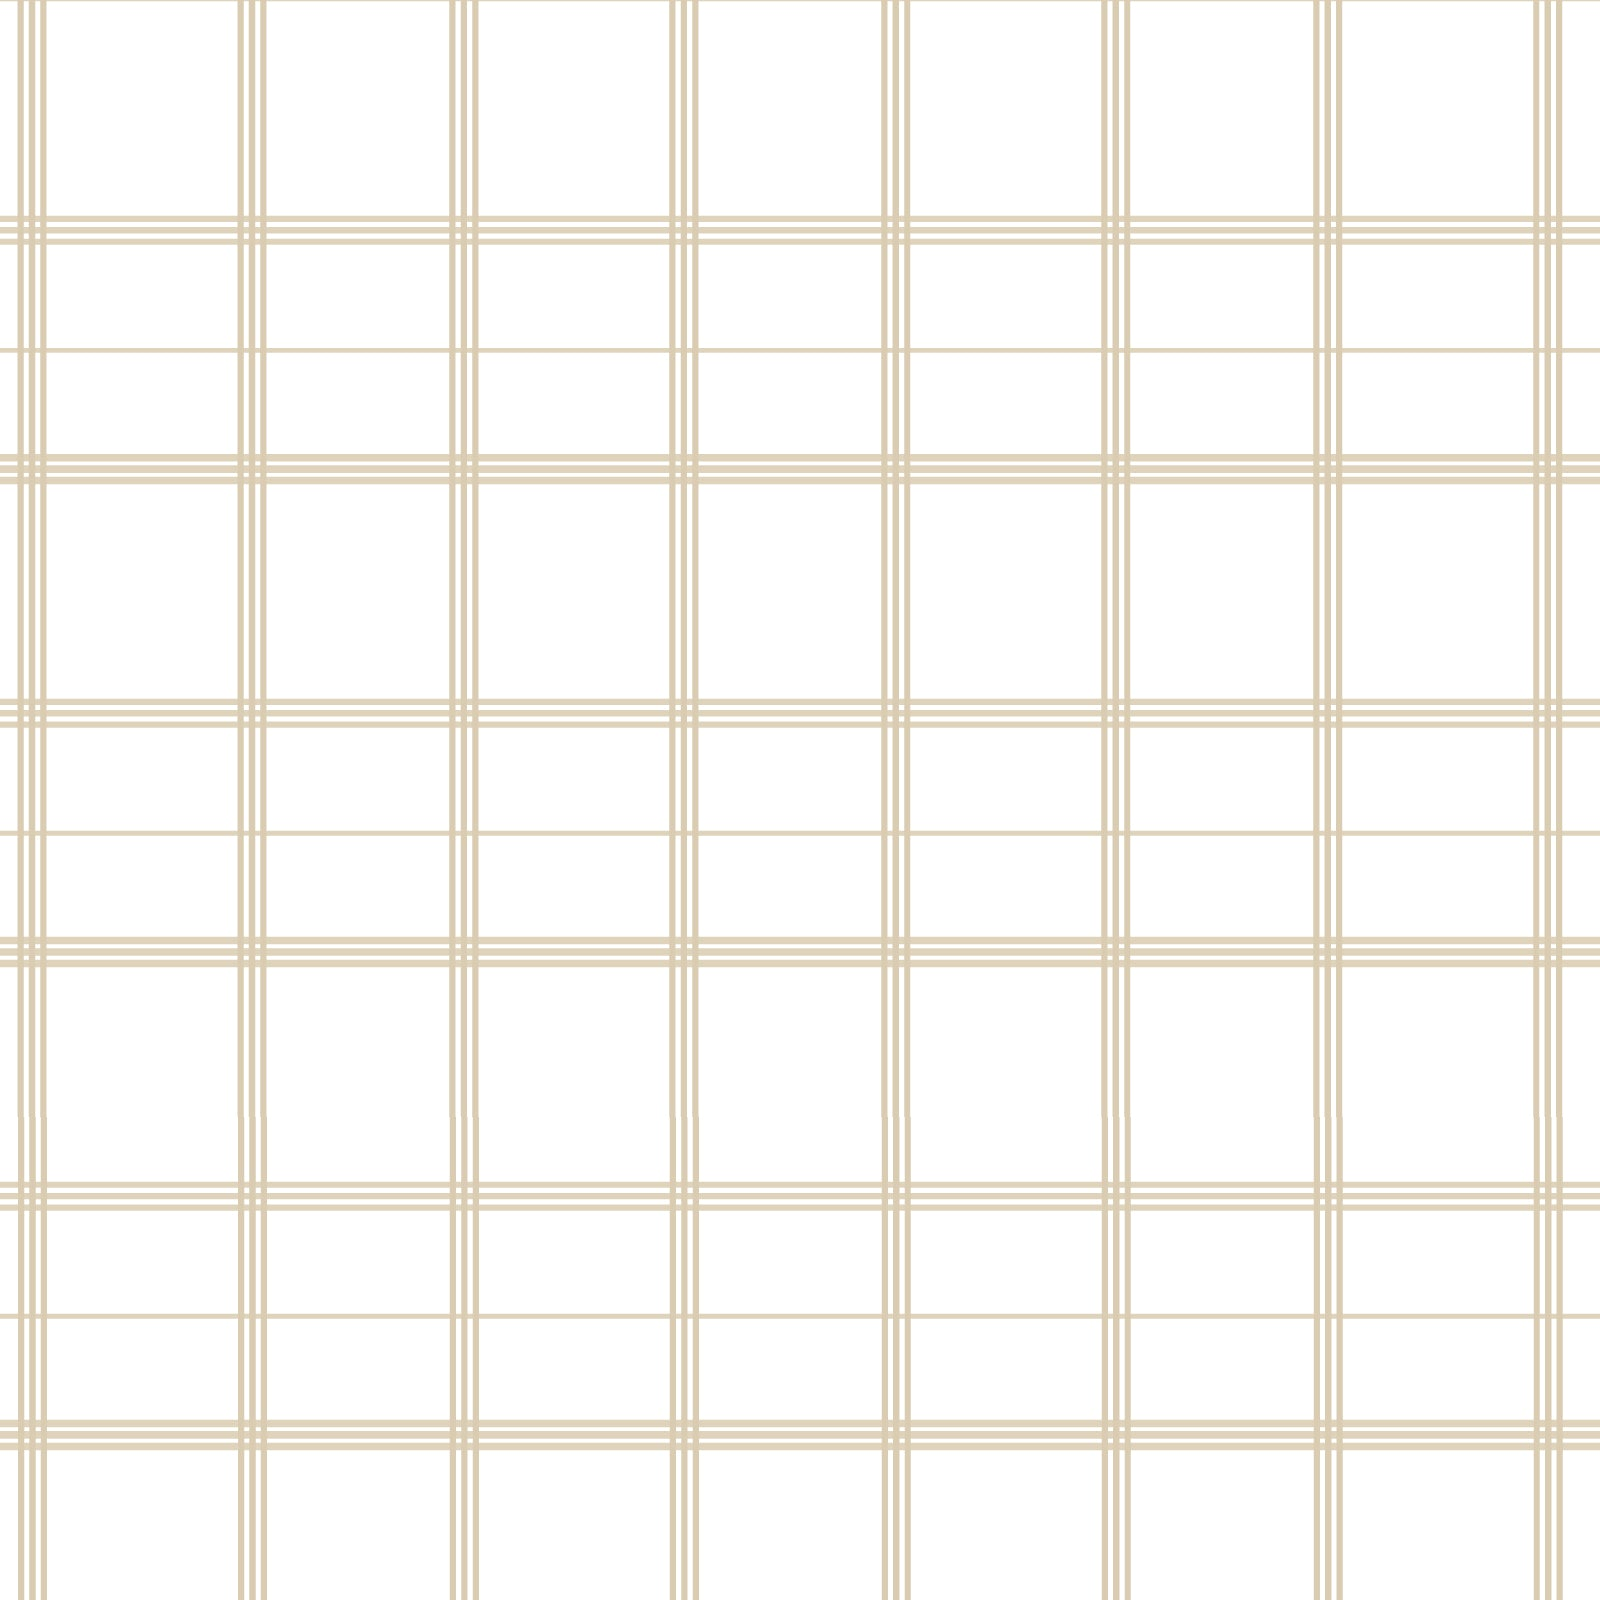 Linden Plaid Fabric in Natural